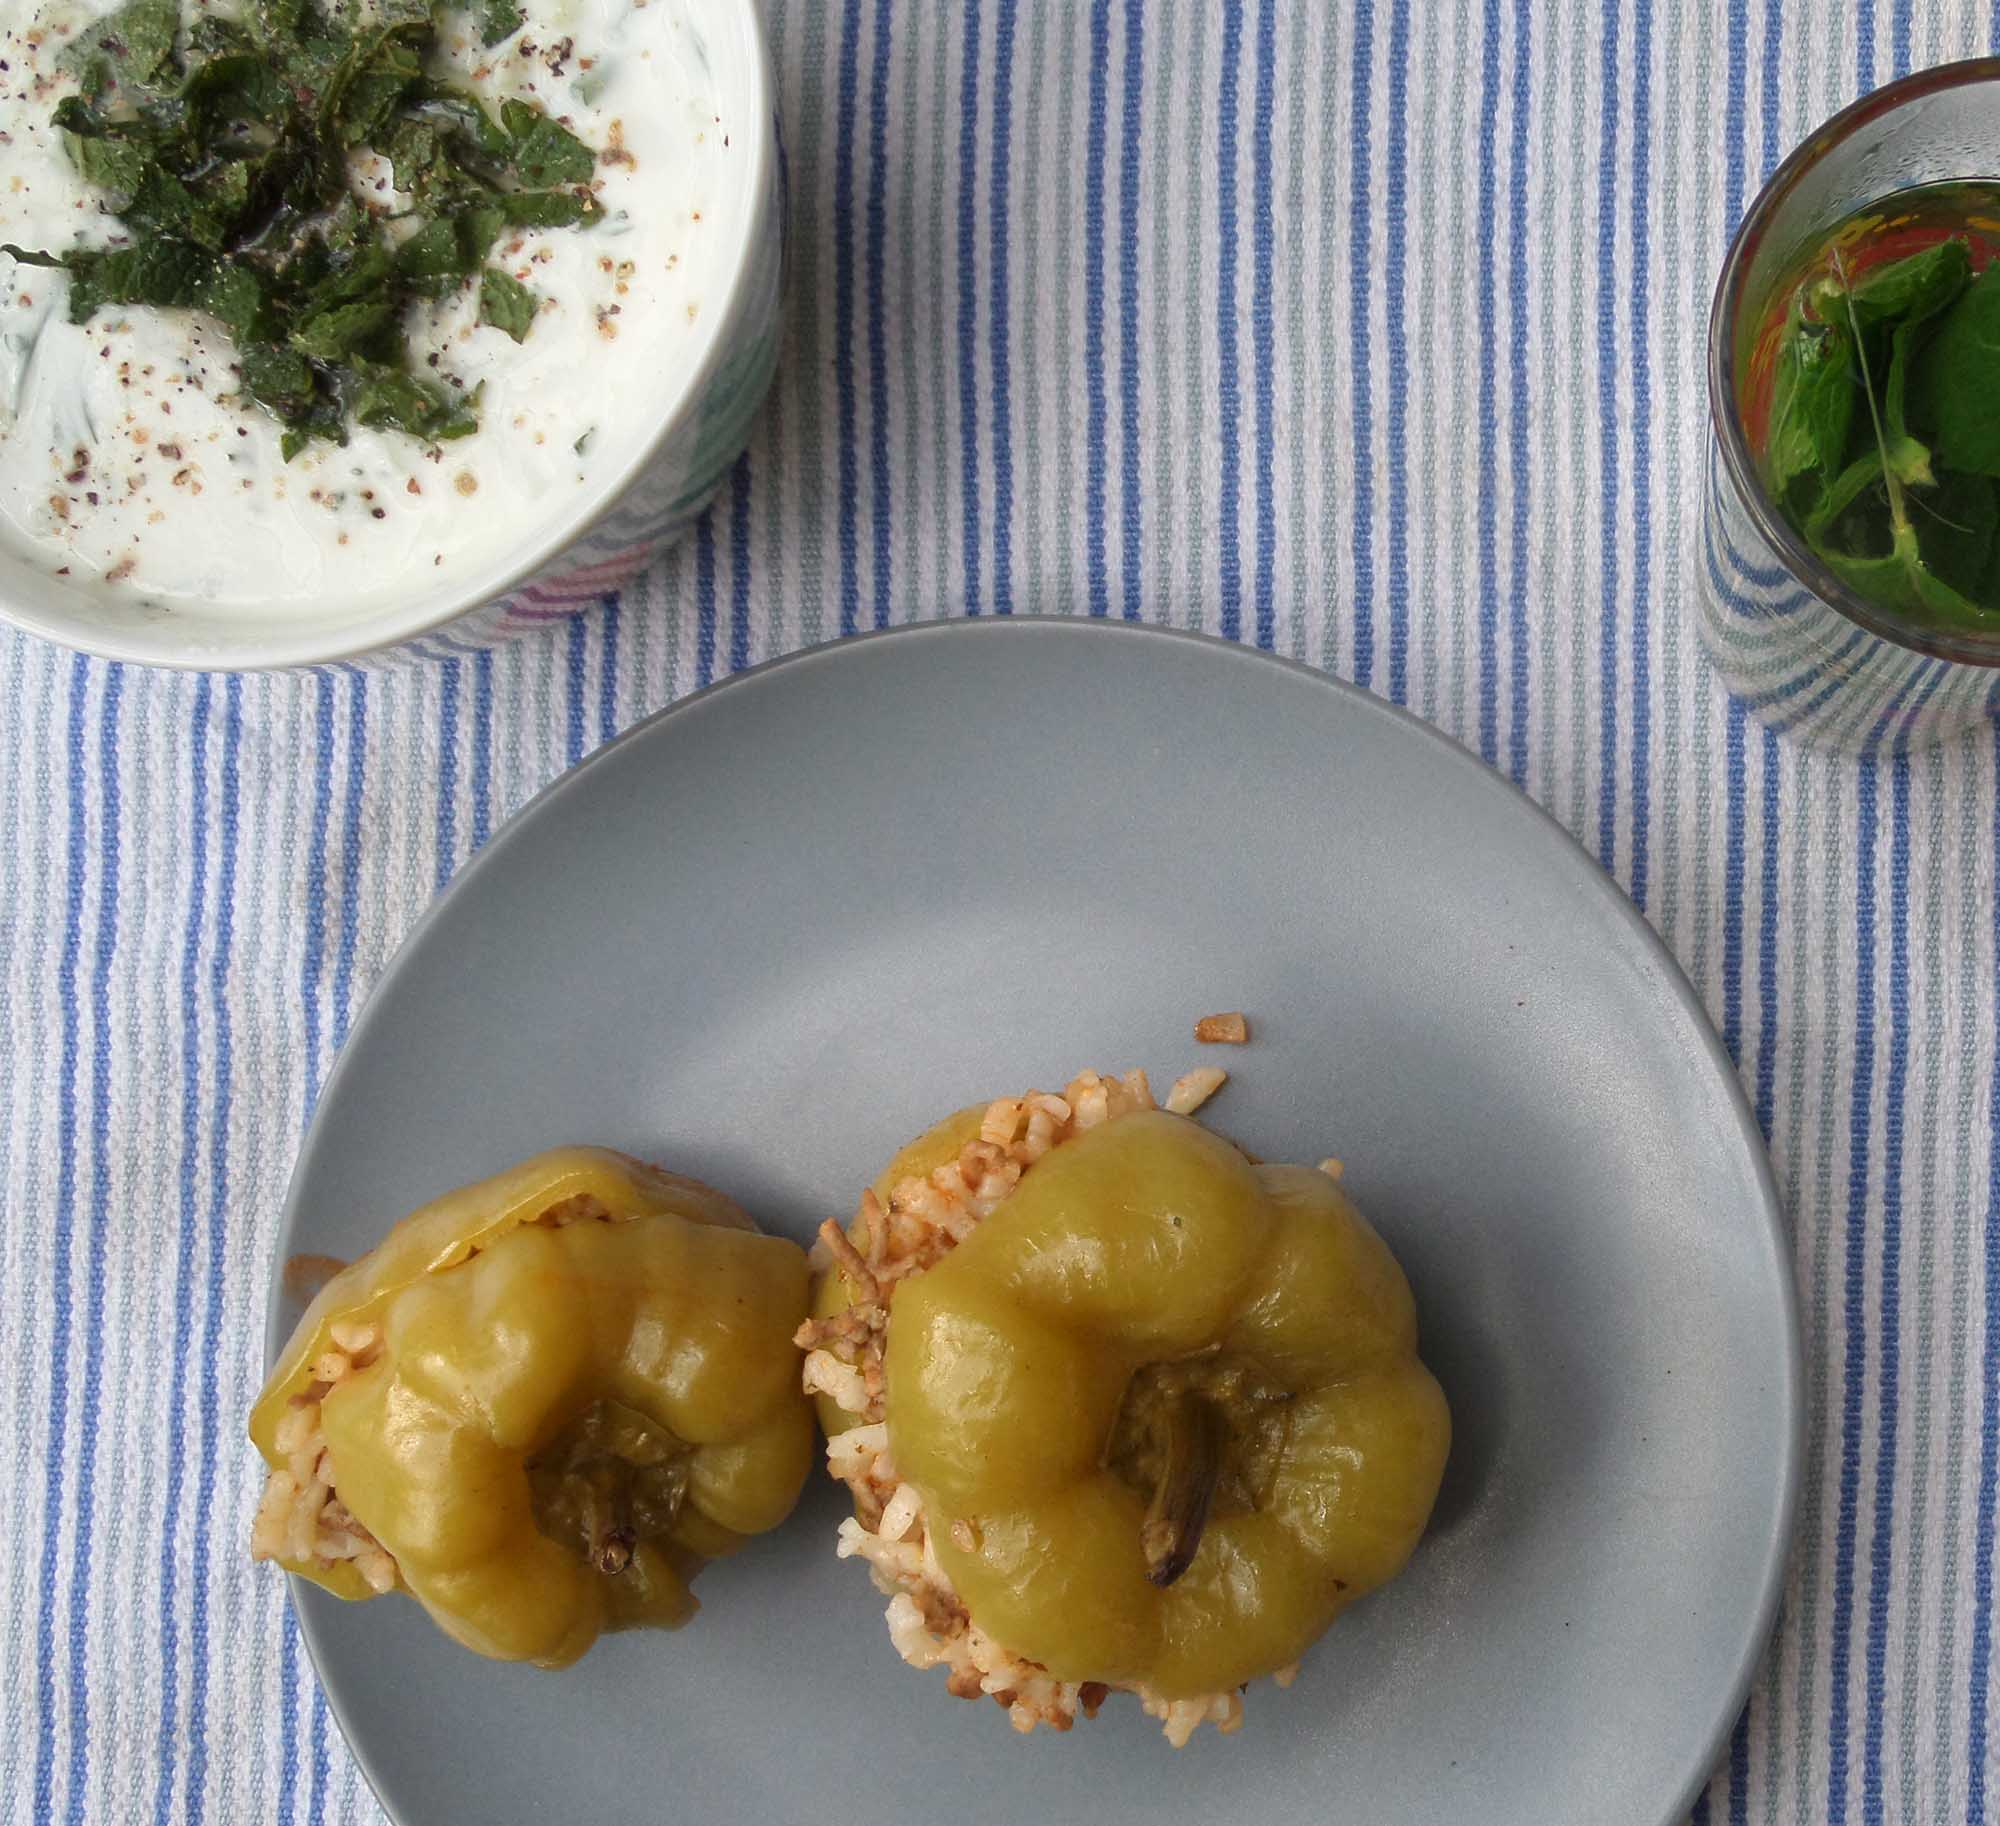 Turkish-style stuffed green peppers by Metterschling